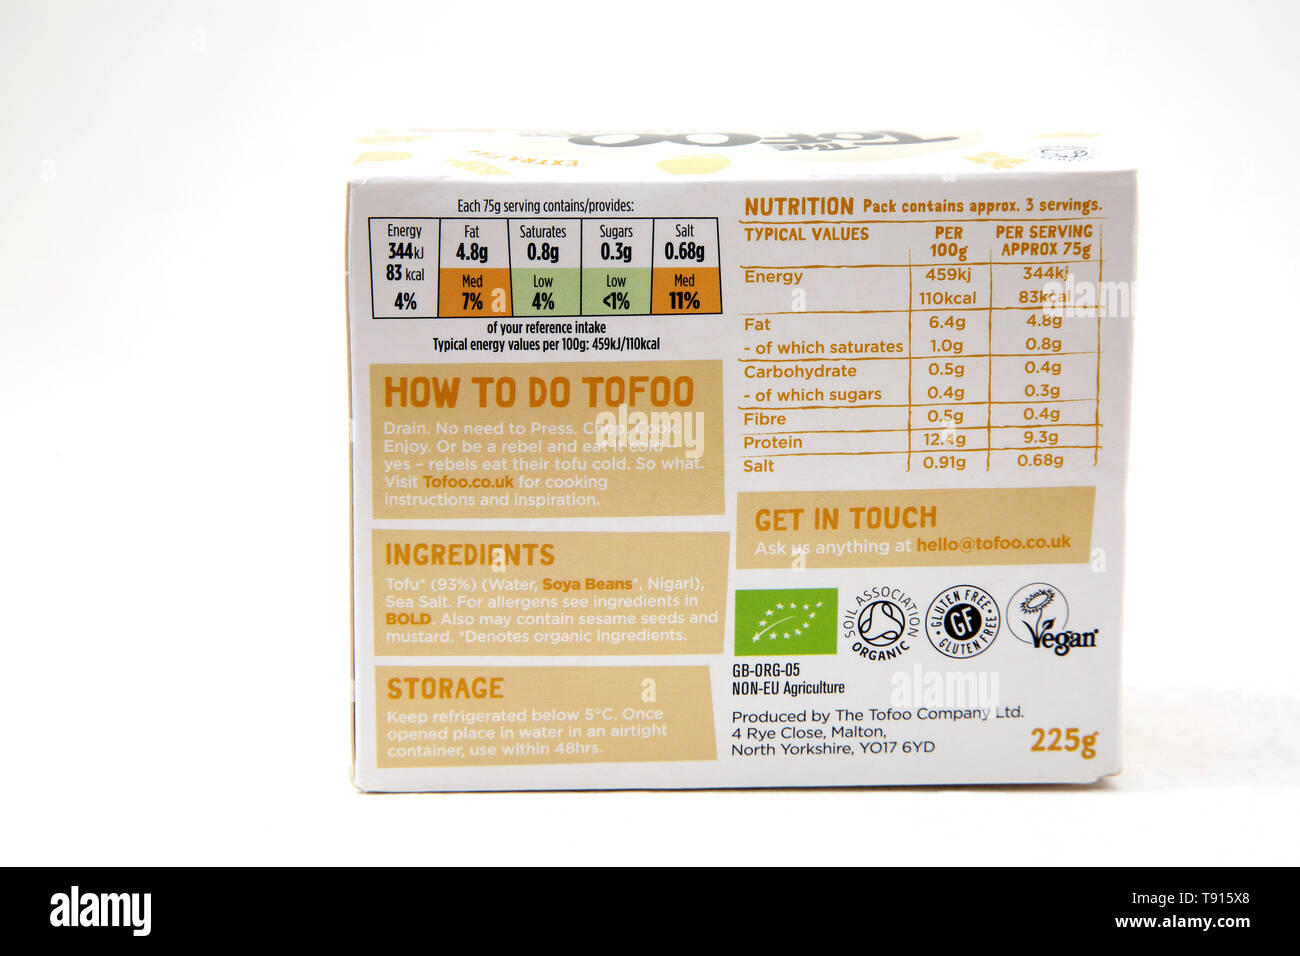 The Tofoo Co Organic Beechwood Smoked Tofu back of pack showing Ingredients, Nutritional Information and Logos - Stock Image